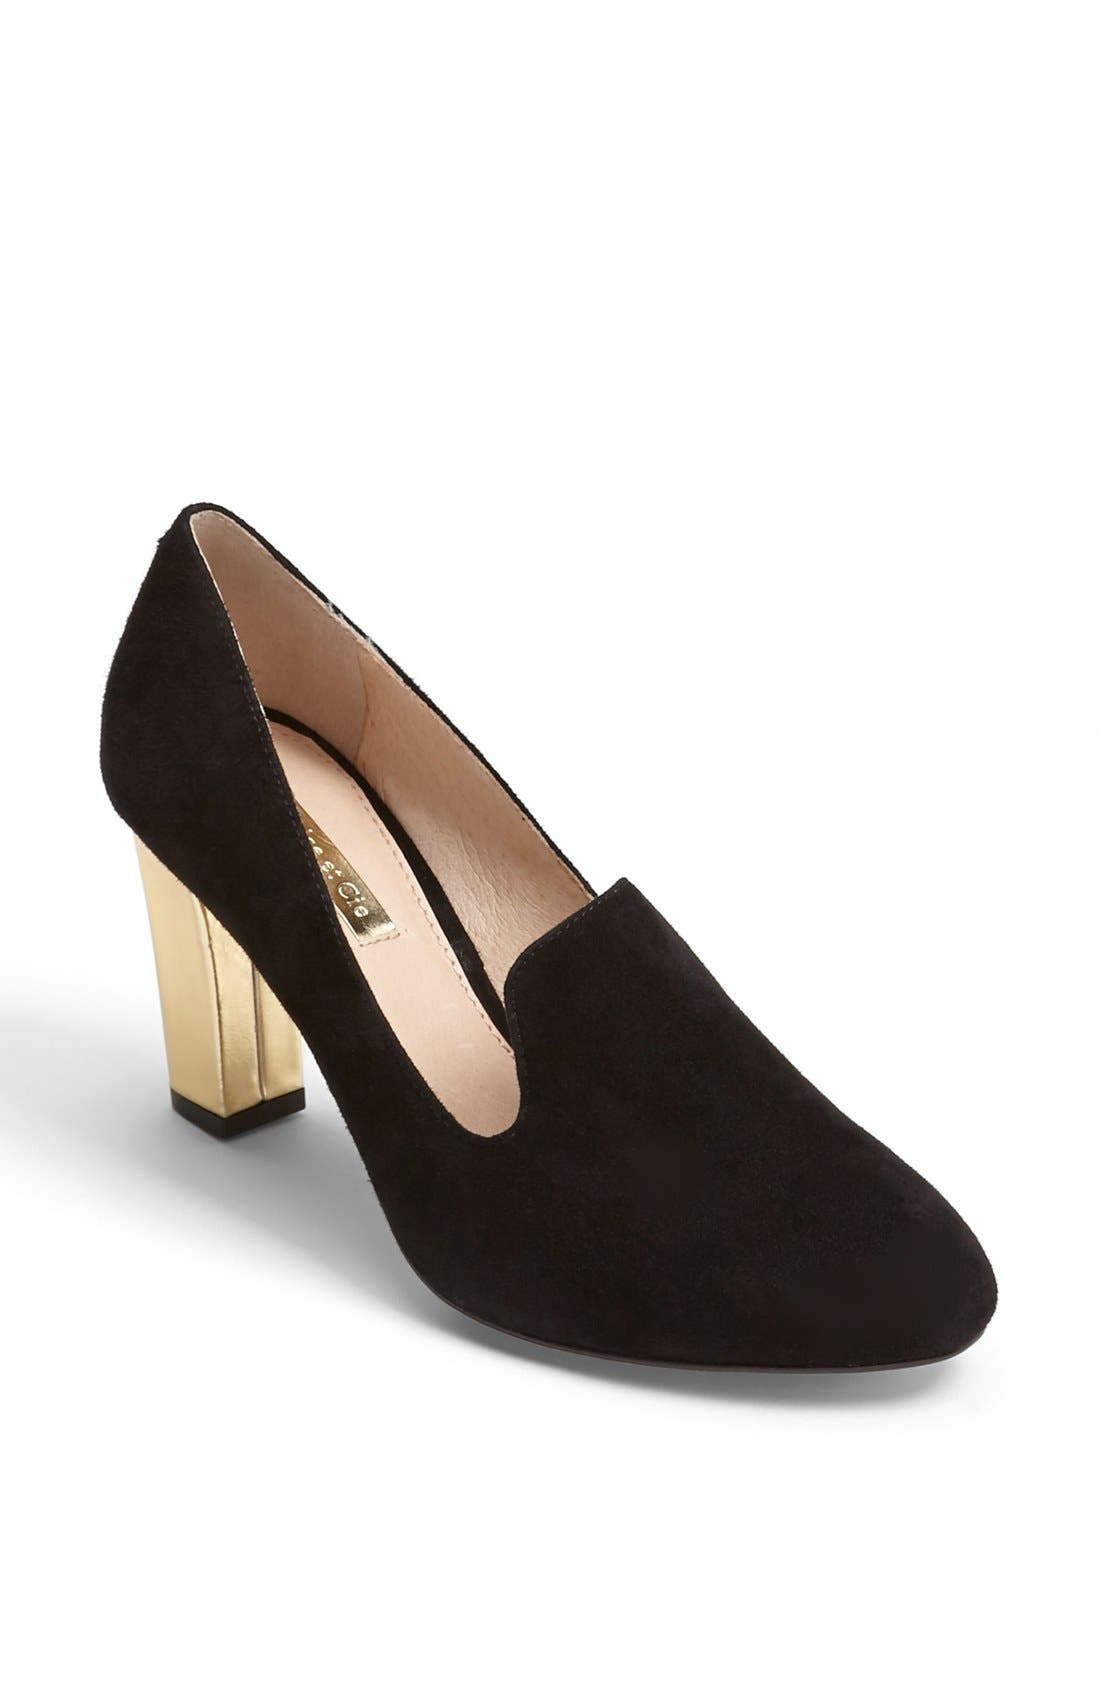 Alternate Image 1 Selected - Louise et Cie 'Gaela' Pump